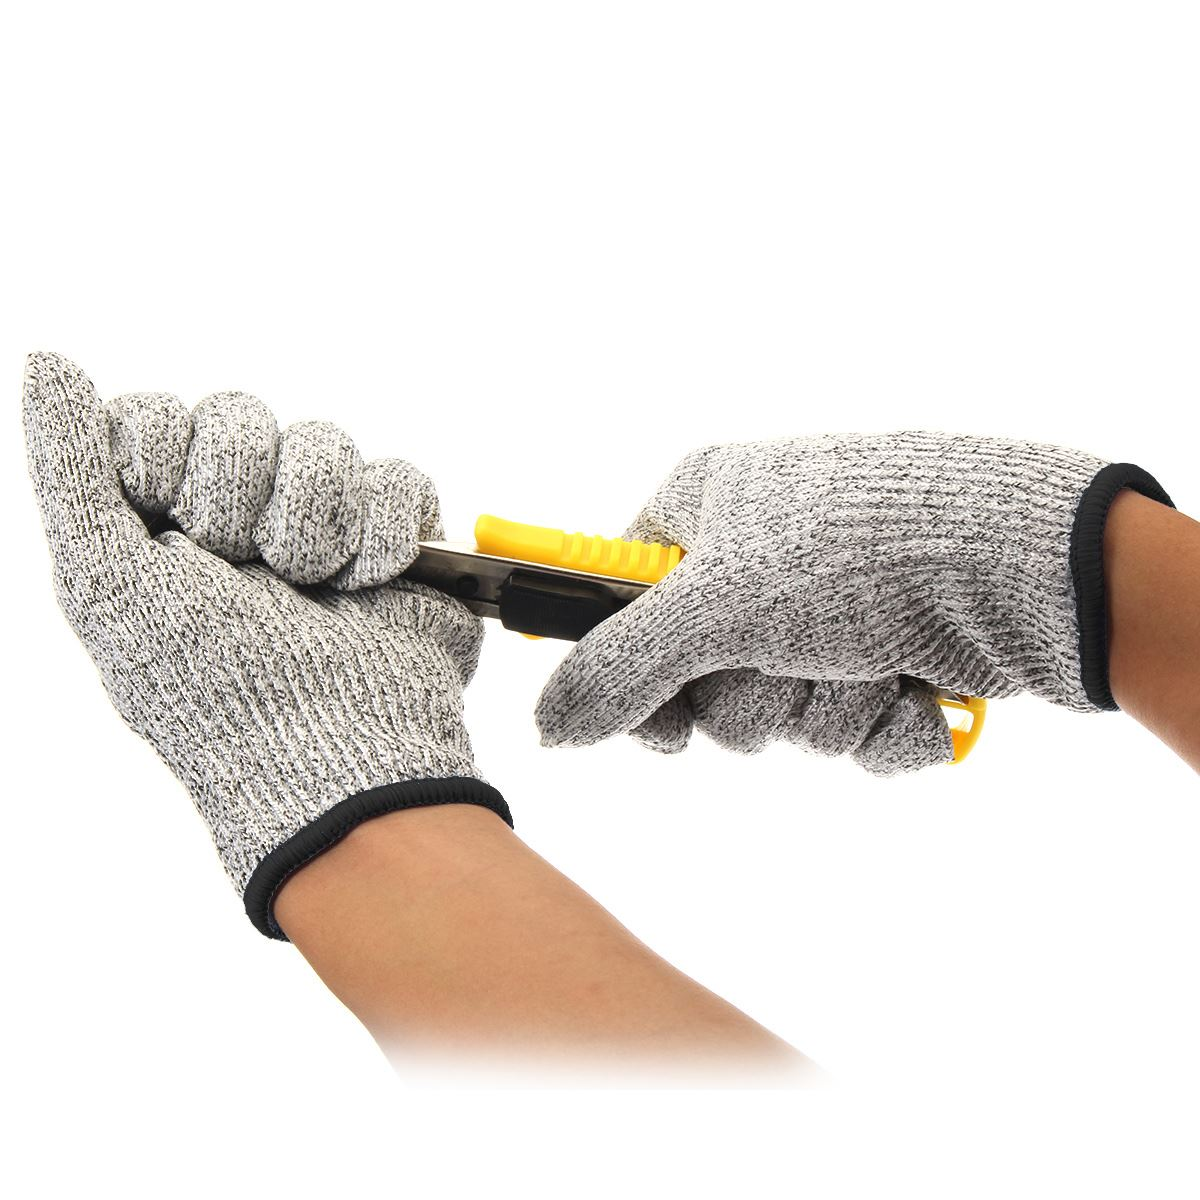 NEW Safurance Safety Cut Proof Stab Resistant Stainless Steel Wire Metal Mesh Butcher Gloves  Cut-Resistant Working Safety new safurance 10 paris wear resistant nylon nitrle precision protective builders gardening working safety gloves